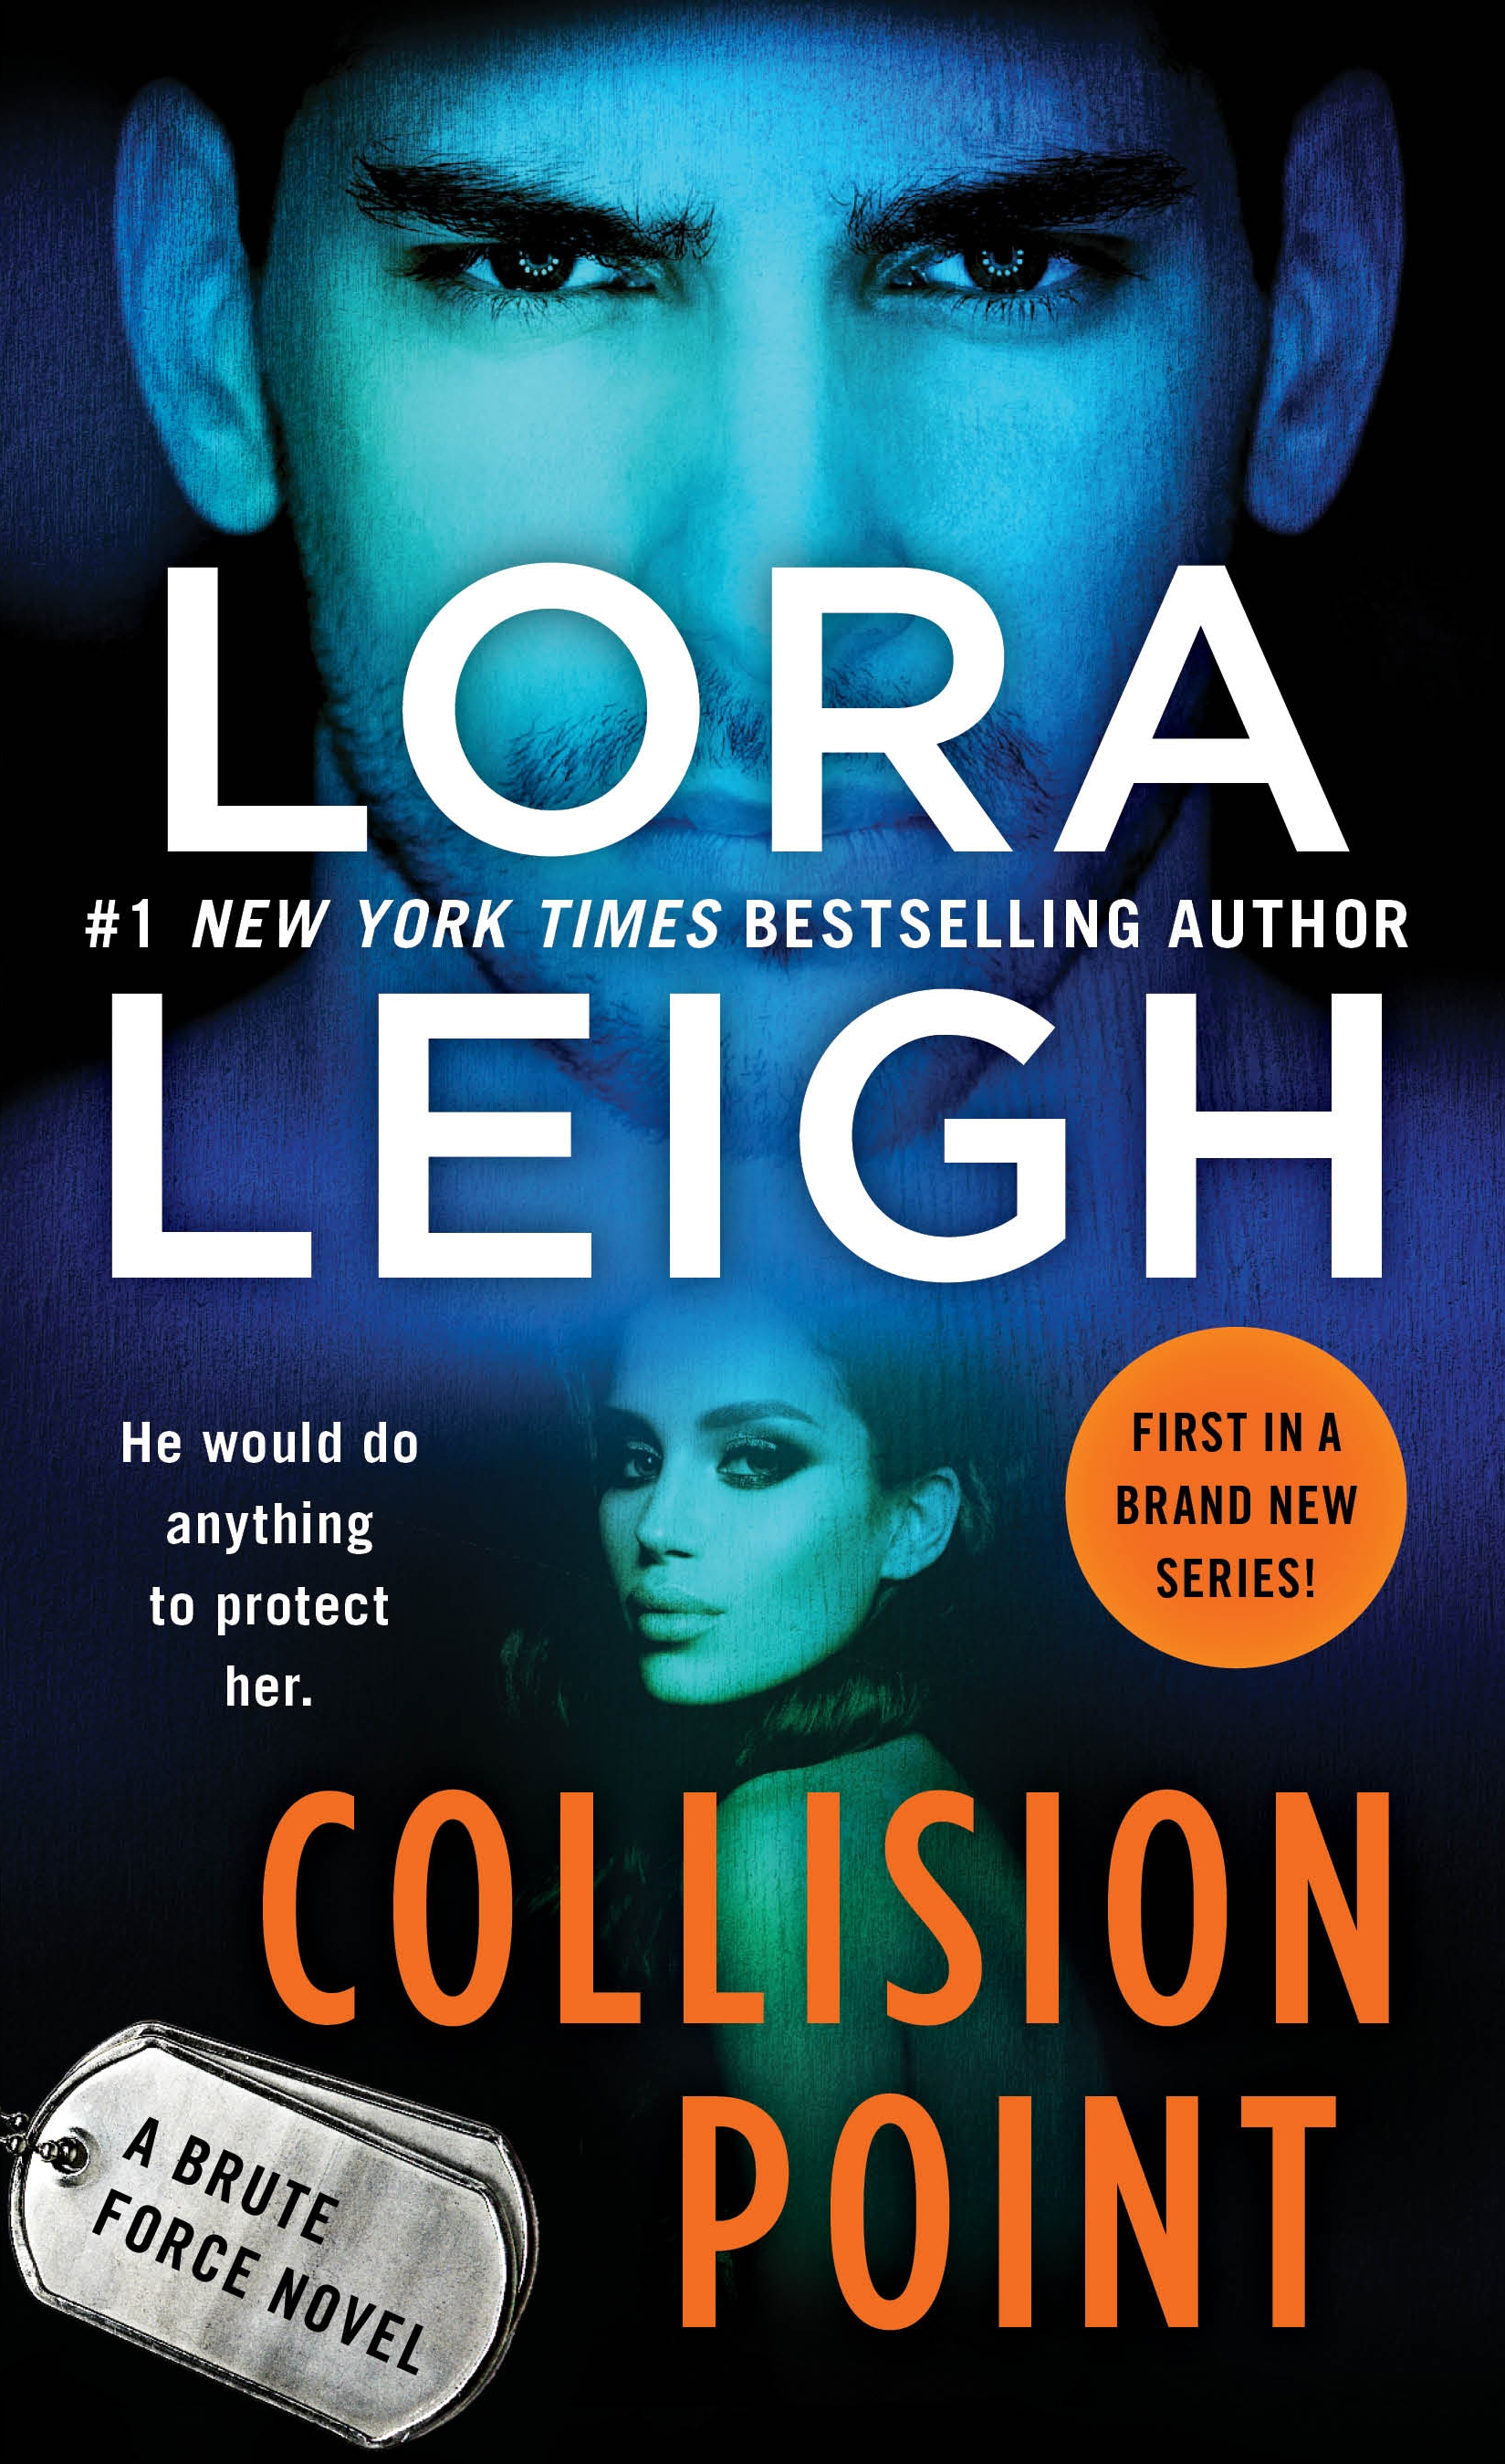 Collision Point [electronic resource] : A Brute Force Novel